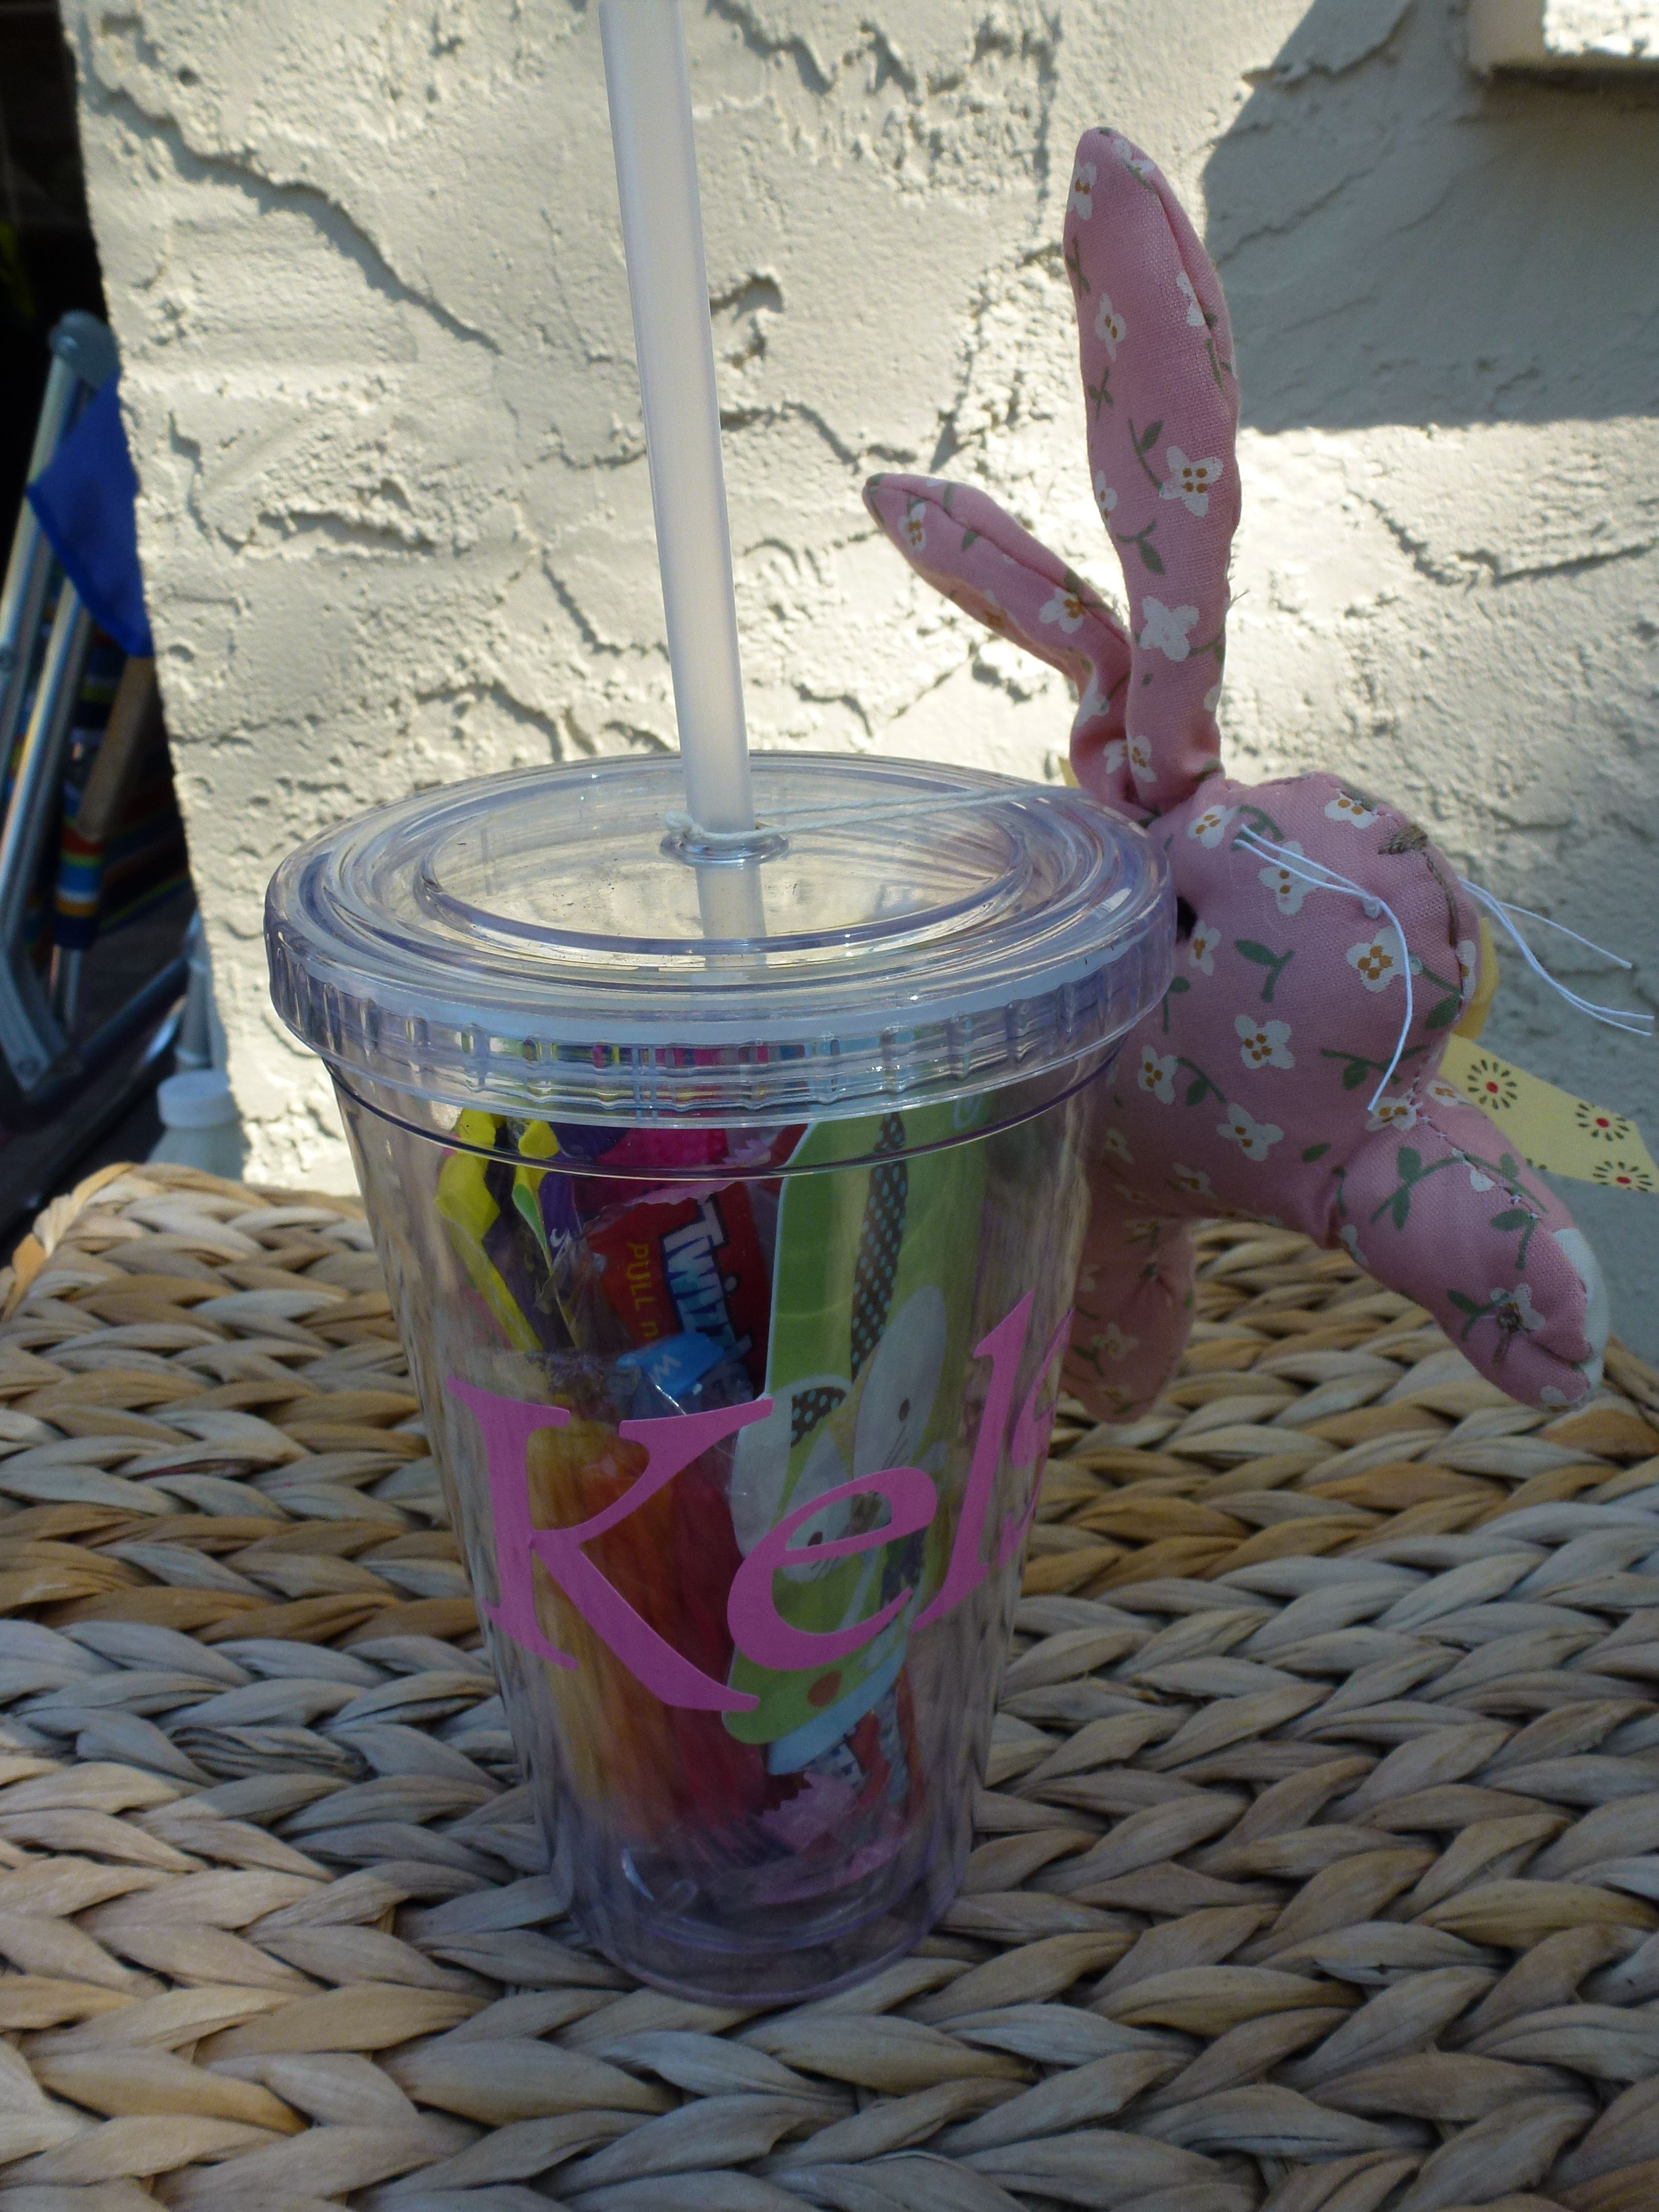 Monogrammed tumbler with twizzlers fun dip and gift cardece monogrammed tumbler with twizzlers fun dip and gift cardece easter negle Choice Image